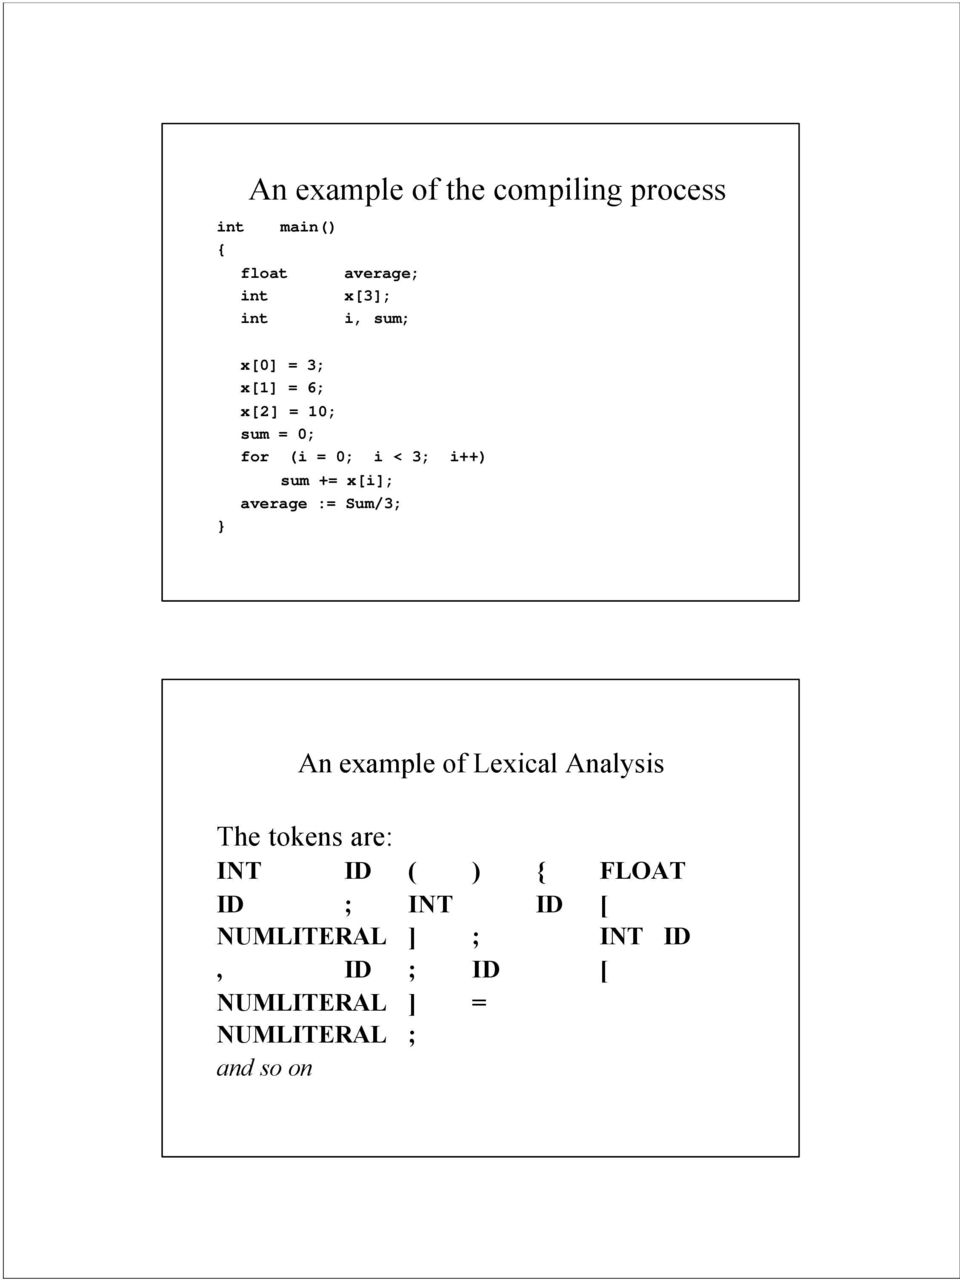 average := Sum/3; An example of Lexical Analysis The tokens are: INT ID ( ) {